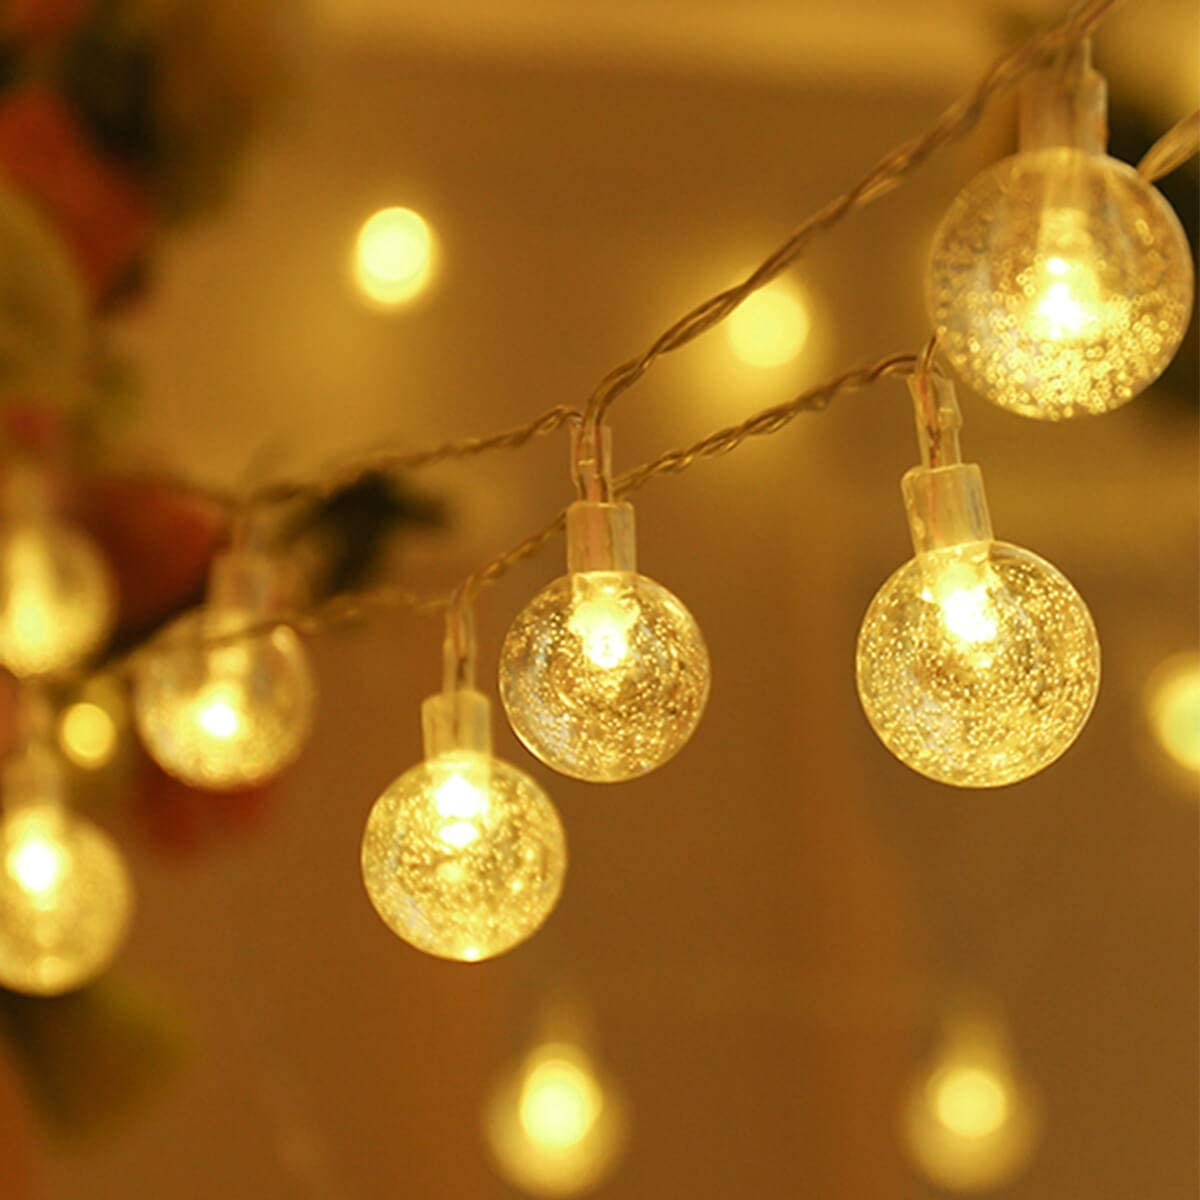 ALOVECO Battery Operated LED String Lights, 14.8ft 40 Globe String Lights,Waterproof Indoor Outdoor Ball Fairy String Lights, 8 Modes Decorative Lighting for Bedroom, Garden, Party(2 Pack)